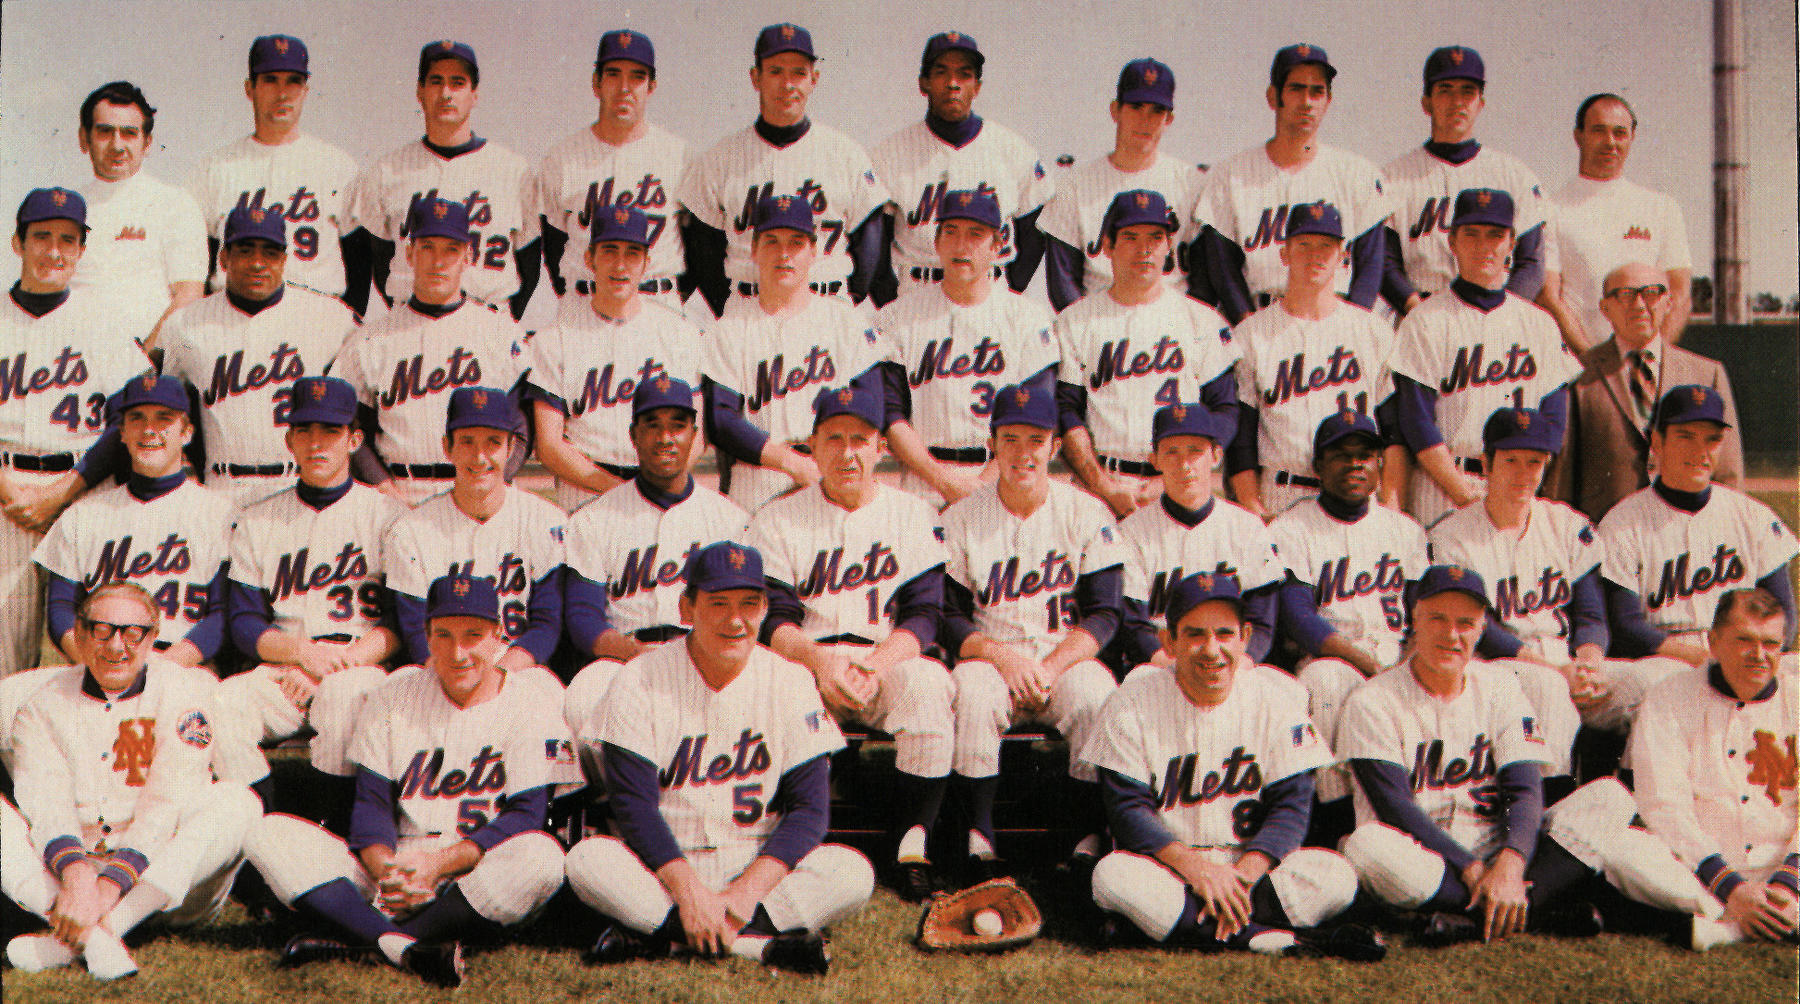 The 1969 New York Mets. Jerry Grote is in the second row, fifth from the right. BL-2968.71 (National Baseball Hall of Fame Library)